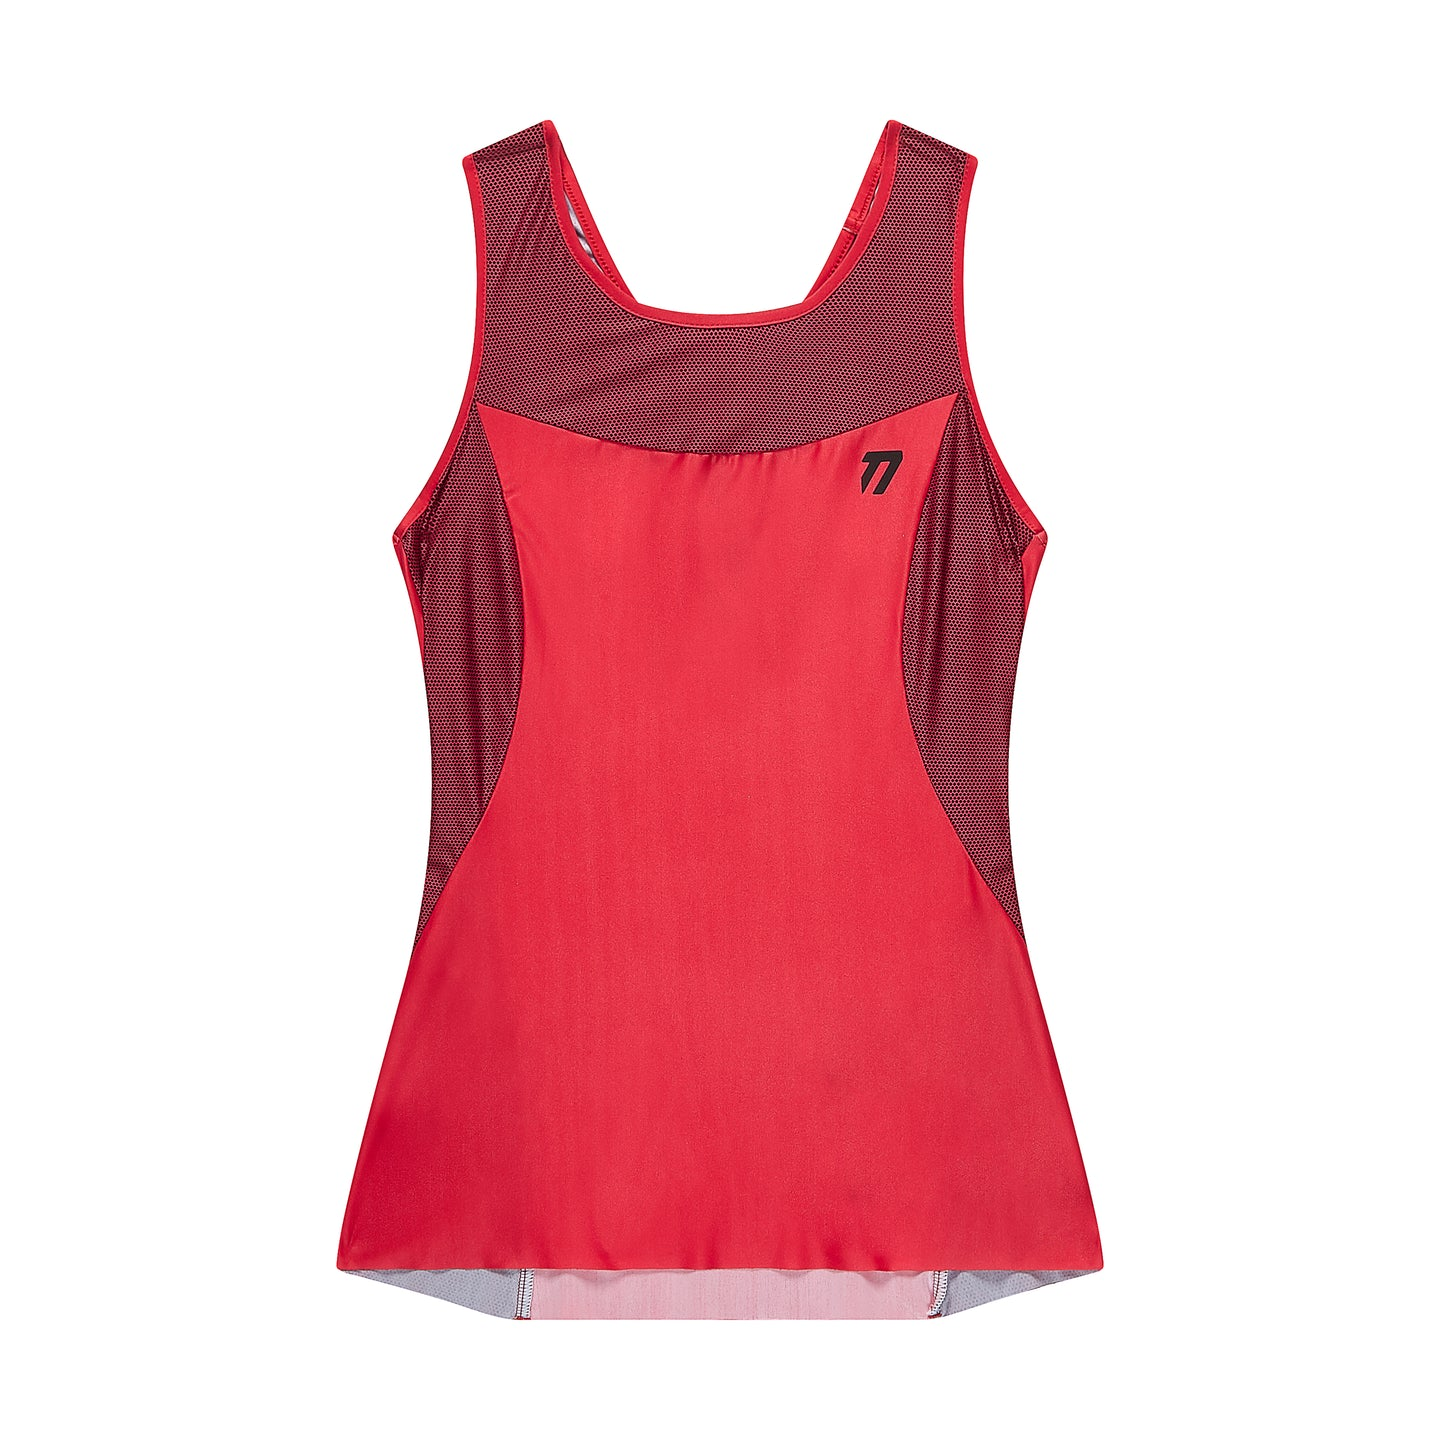 Women's technical tank top front view